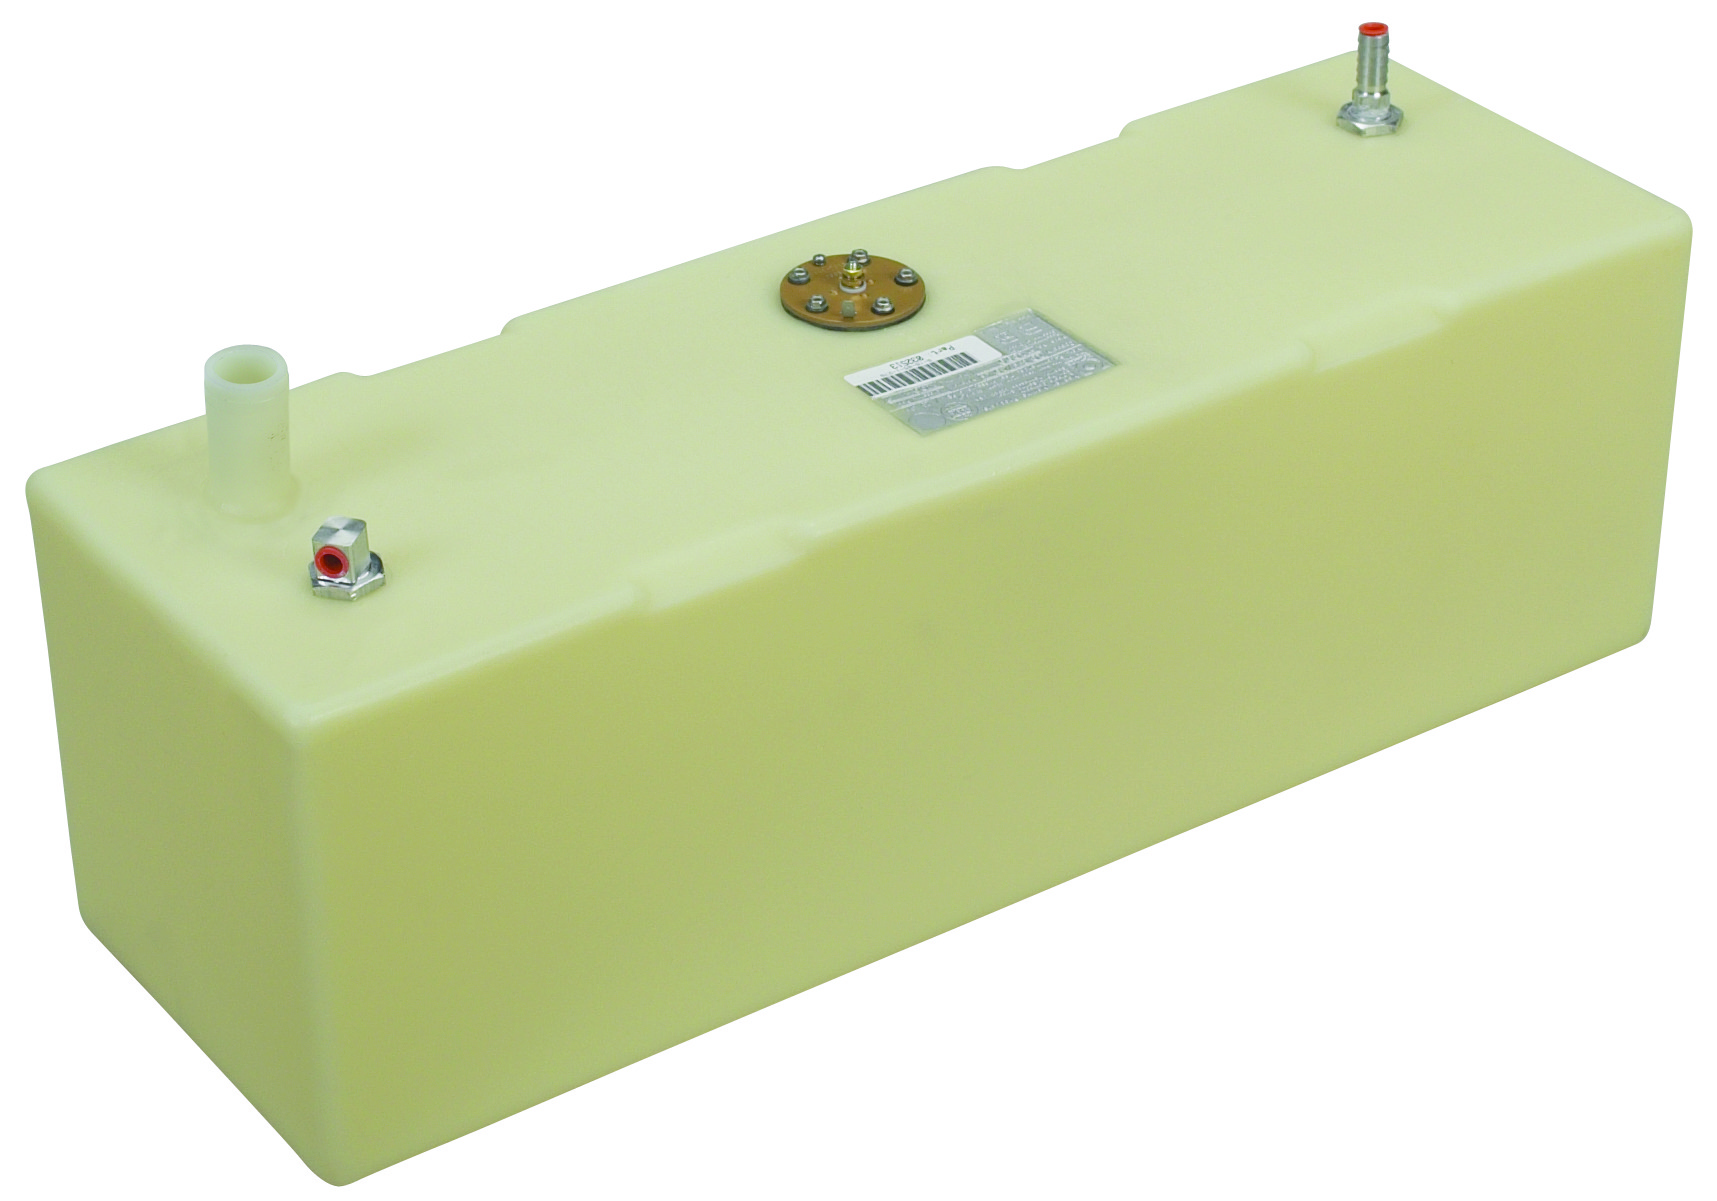 13 Gallon Rectangular Shaped Fuel Tank, 32″x10.25″x10.25″, FOLT1399-1M  (032513)